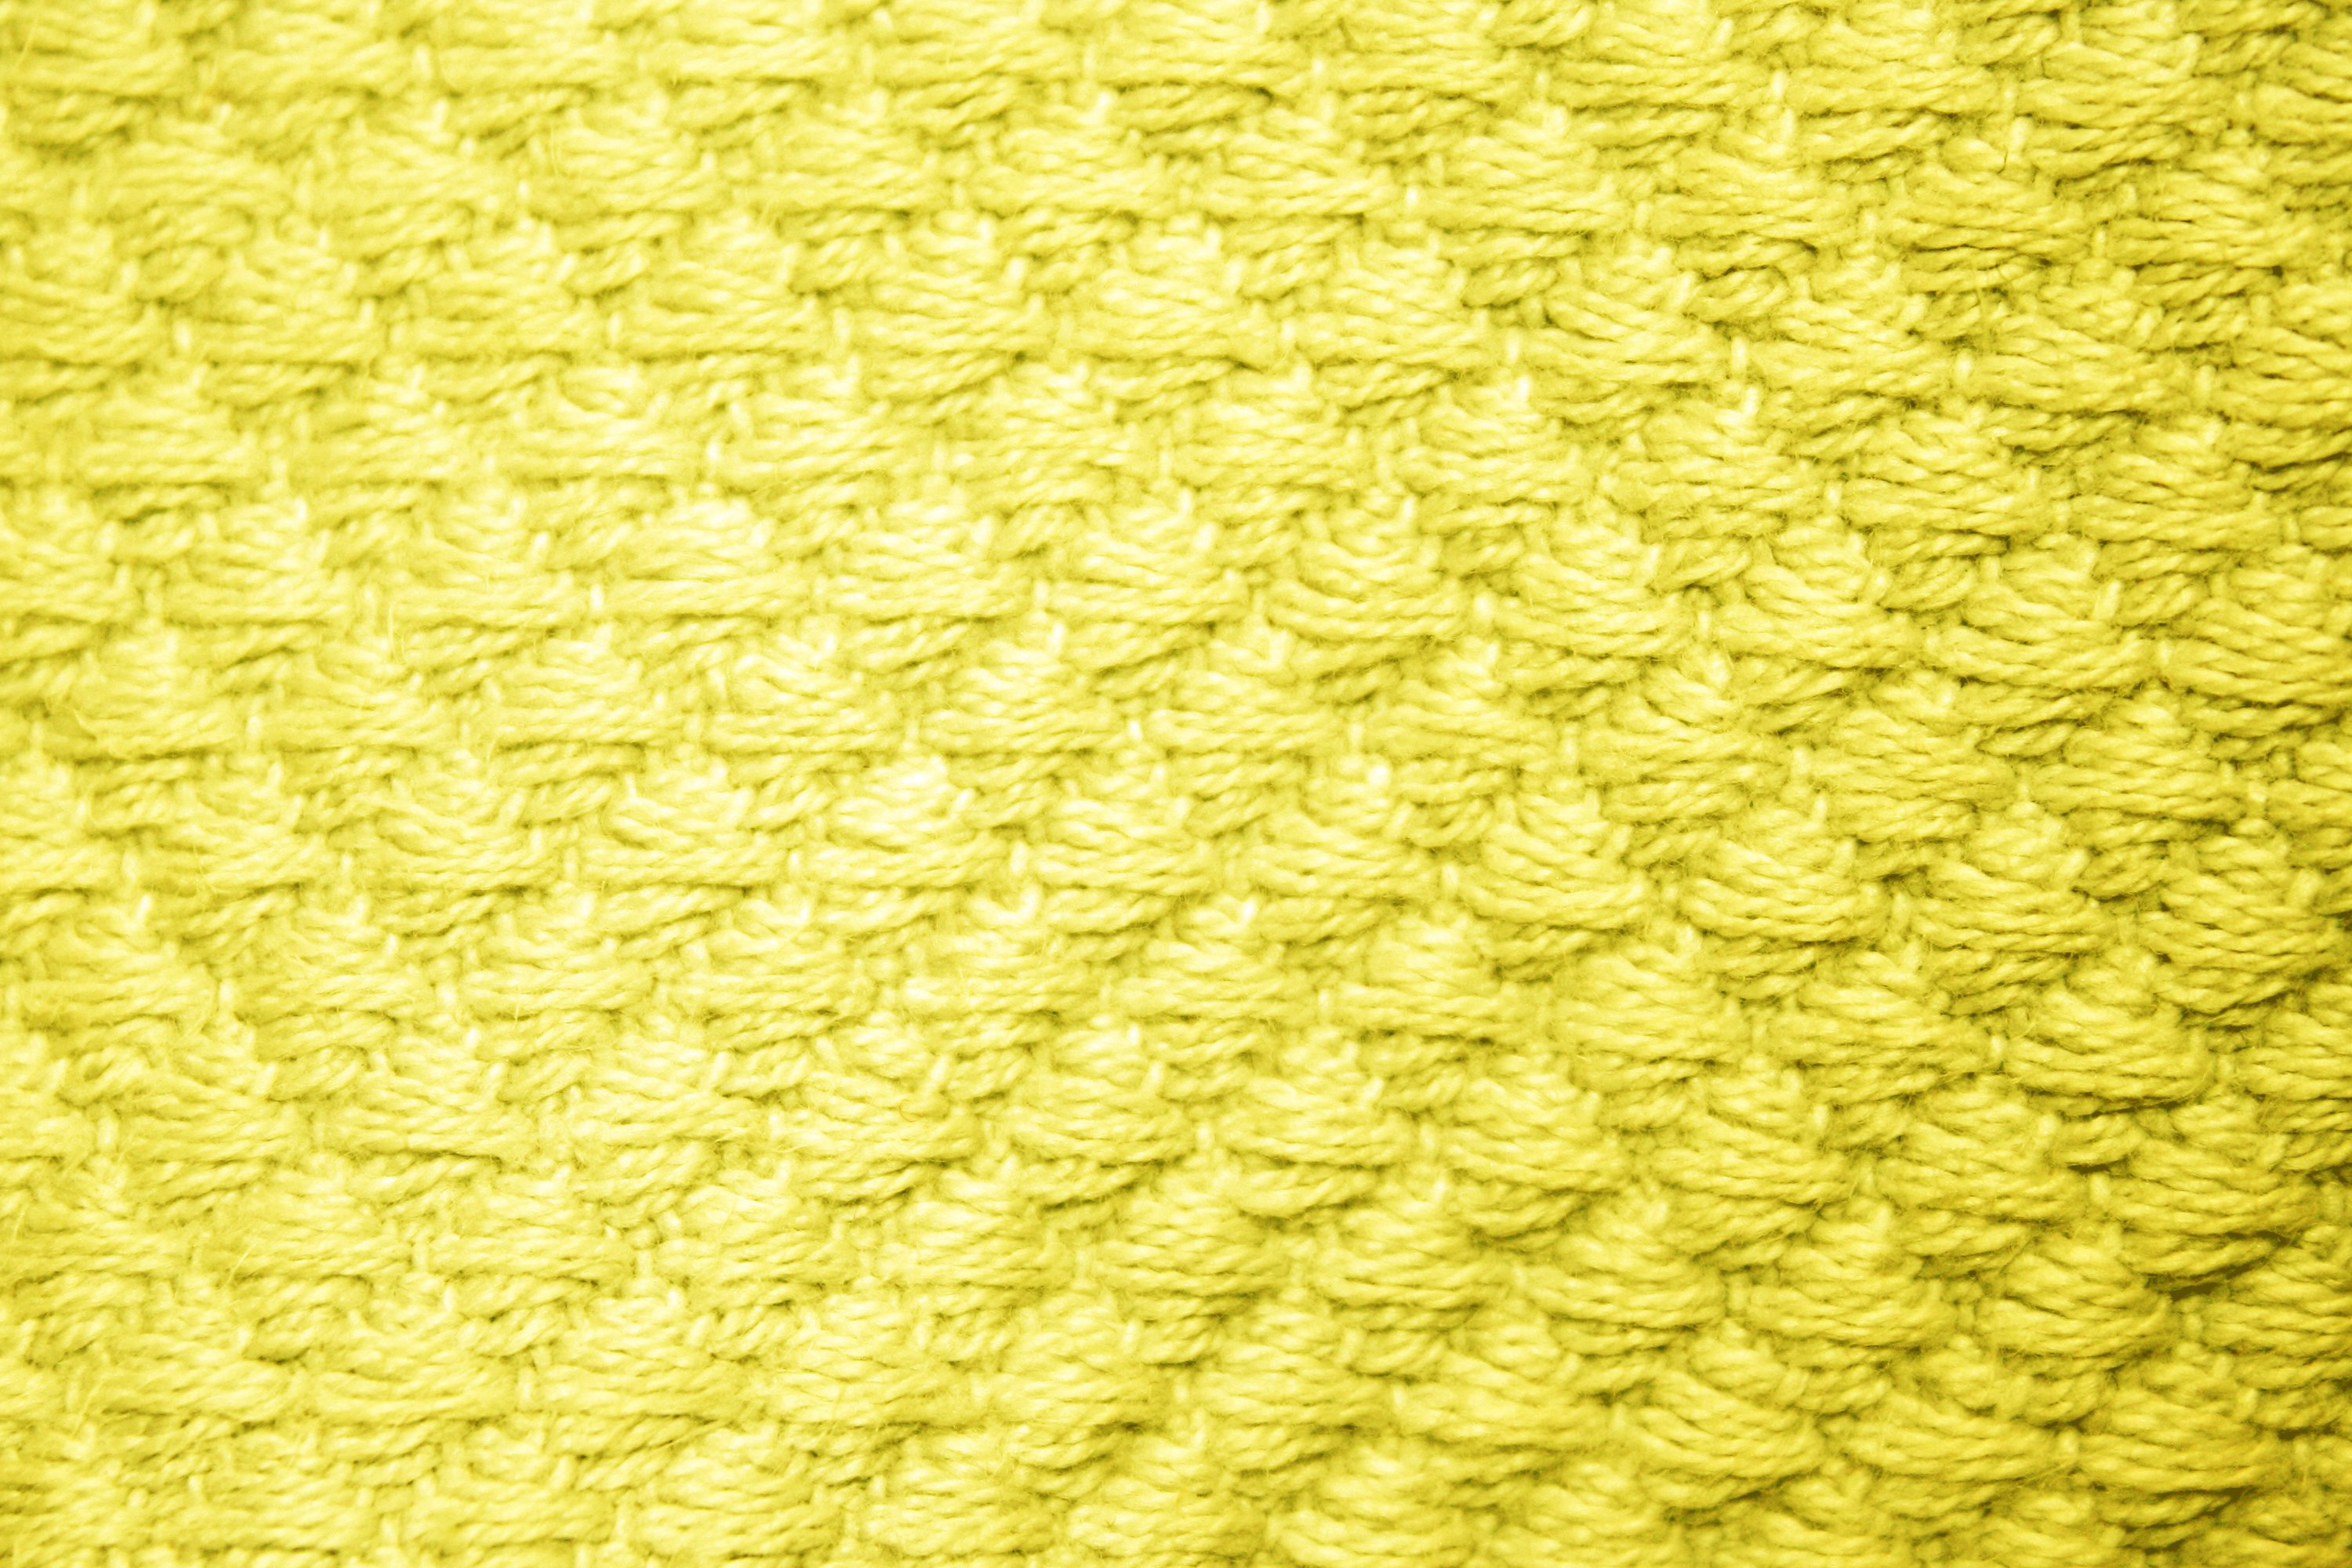 yellow diamond patterned blanket close up texture picture  free  - yellow diamond patterned blanket close up texture